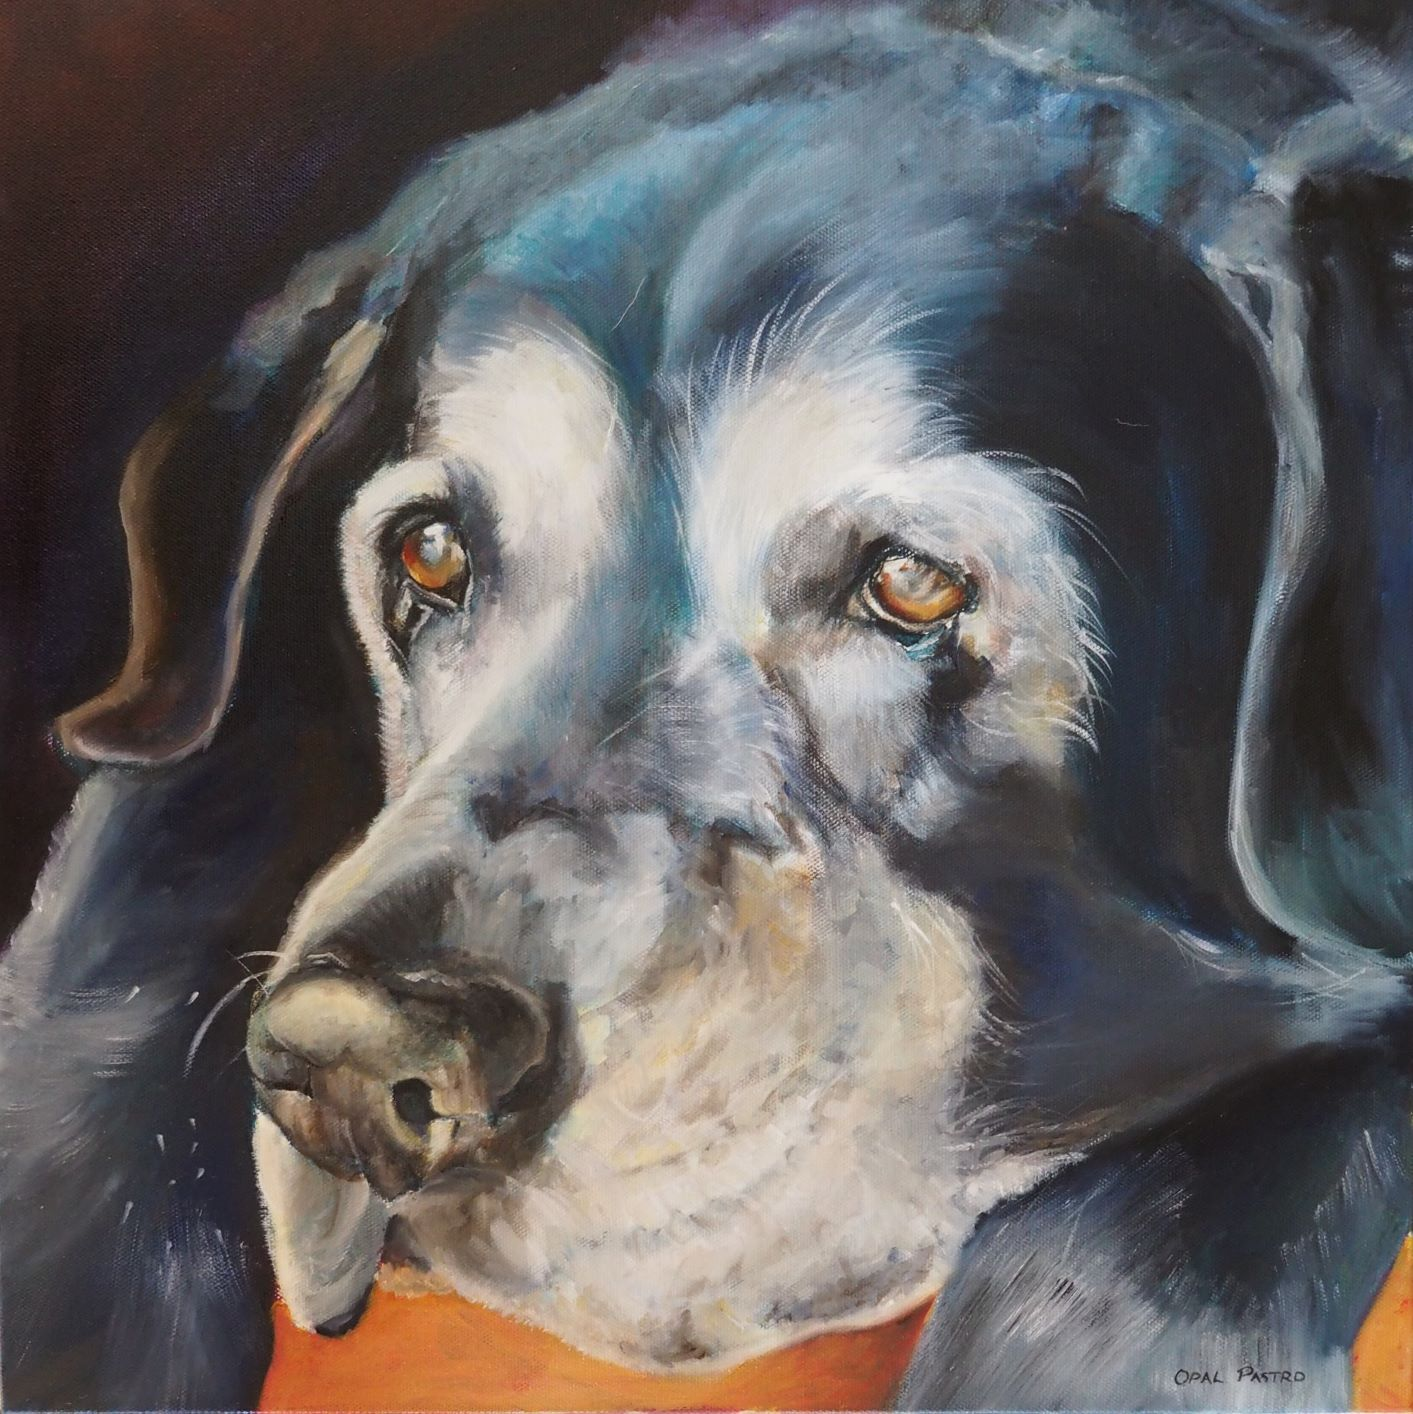 - Old Max's memorial portrait celebrates his gentle nature and loving heart